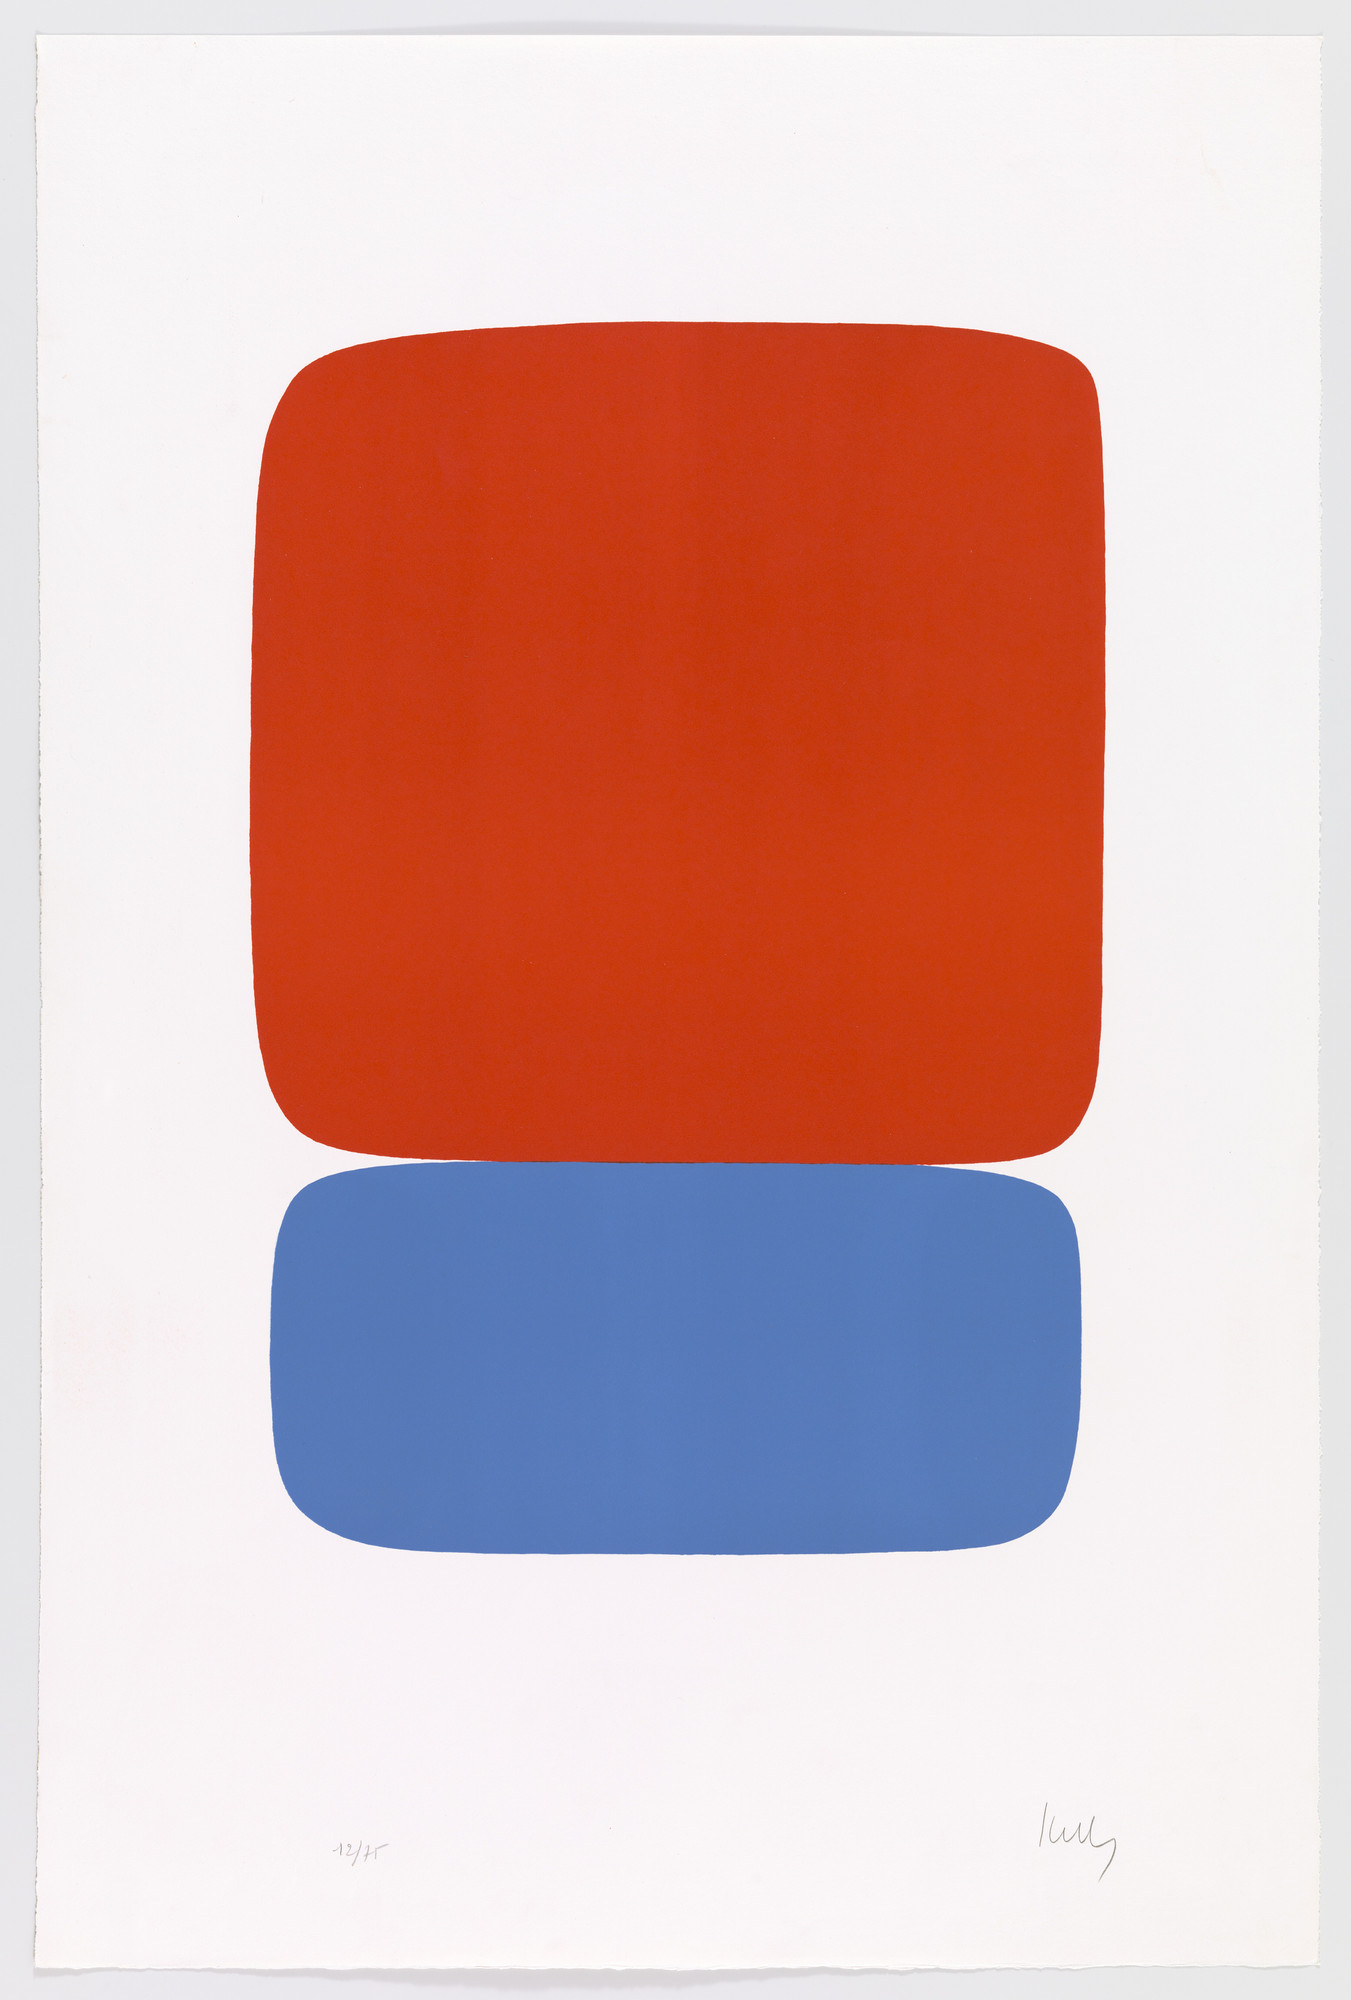 Ellsworth Kelly. Red-Orange over Blue (Rouge-orange sur bleu) from Suite of Twenty-Seven Color Lithographs. 1964–65